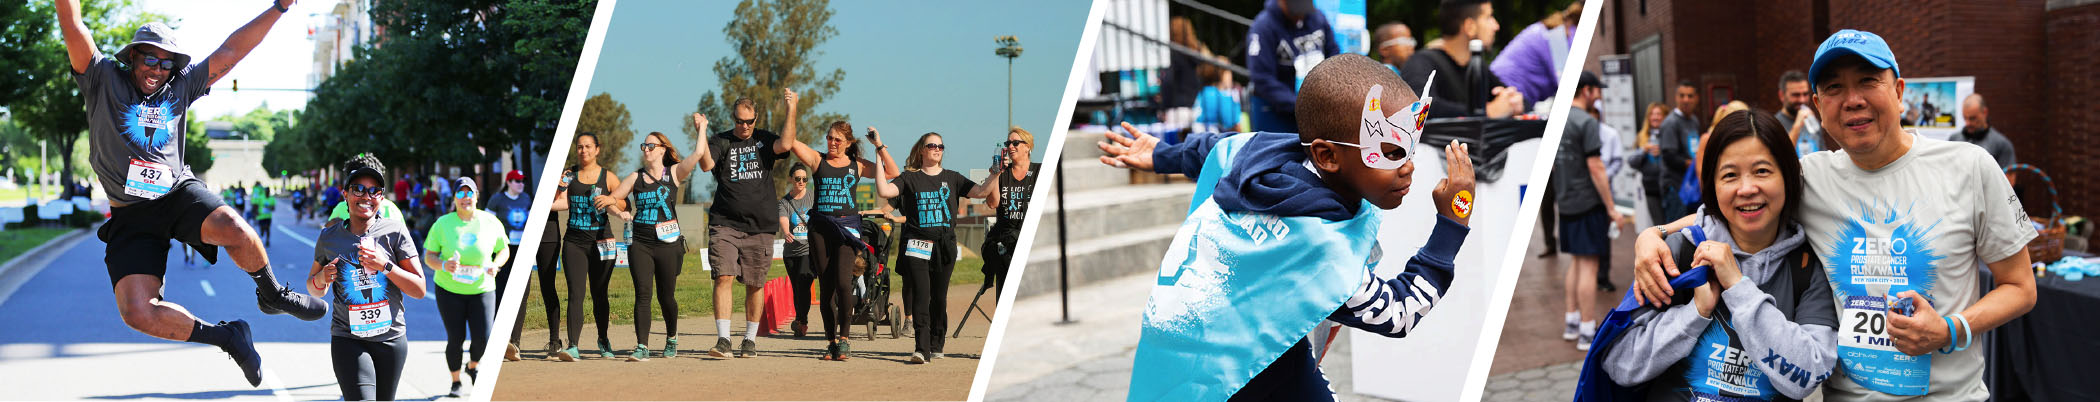 2019 ZERO Prostate Cancer Run/Walk - Greater Los Angeles